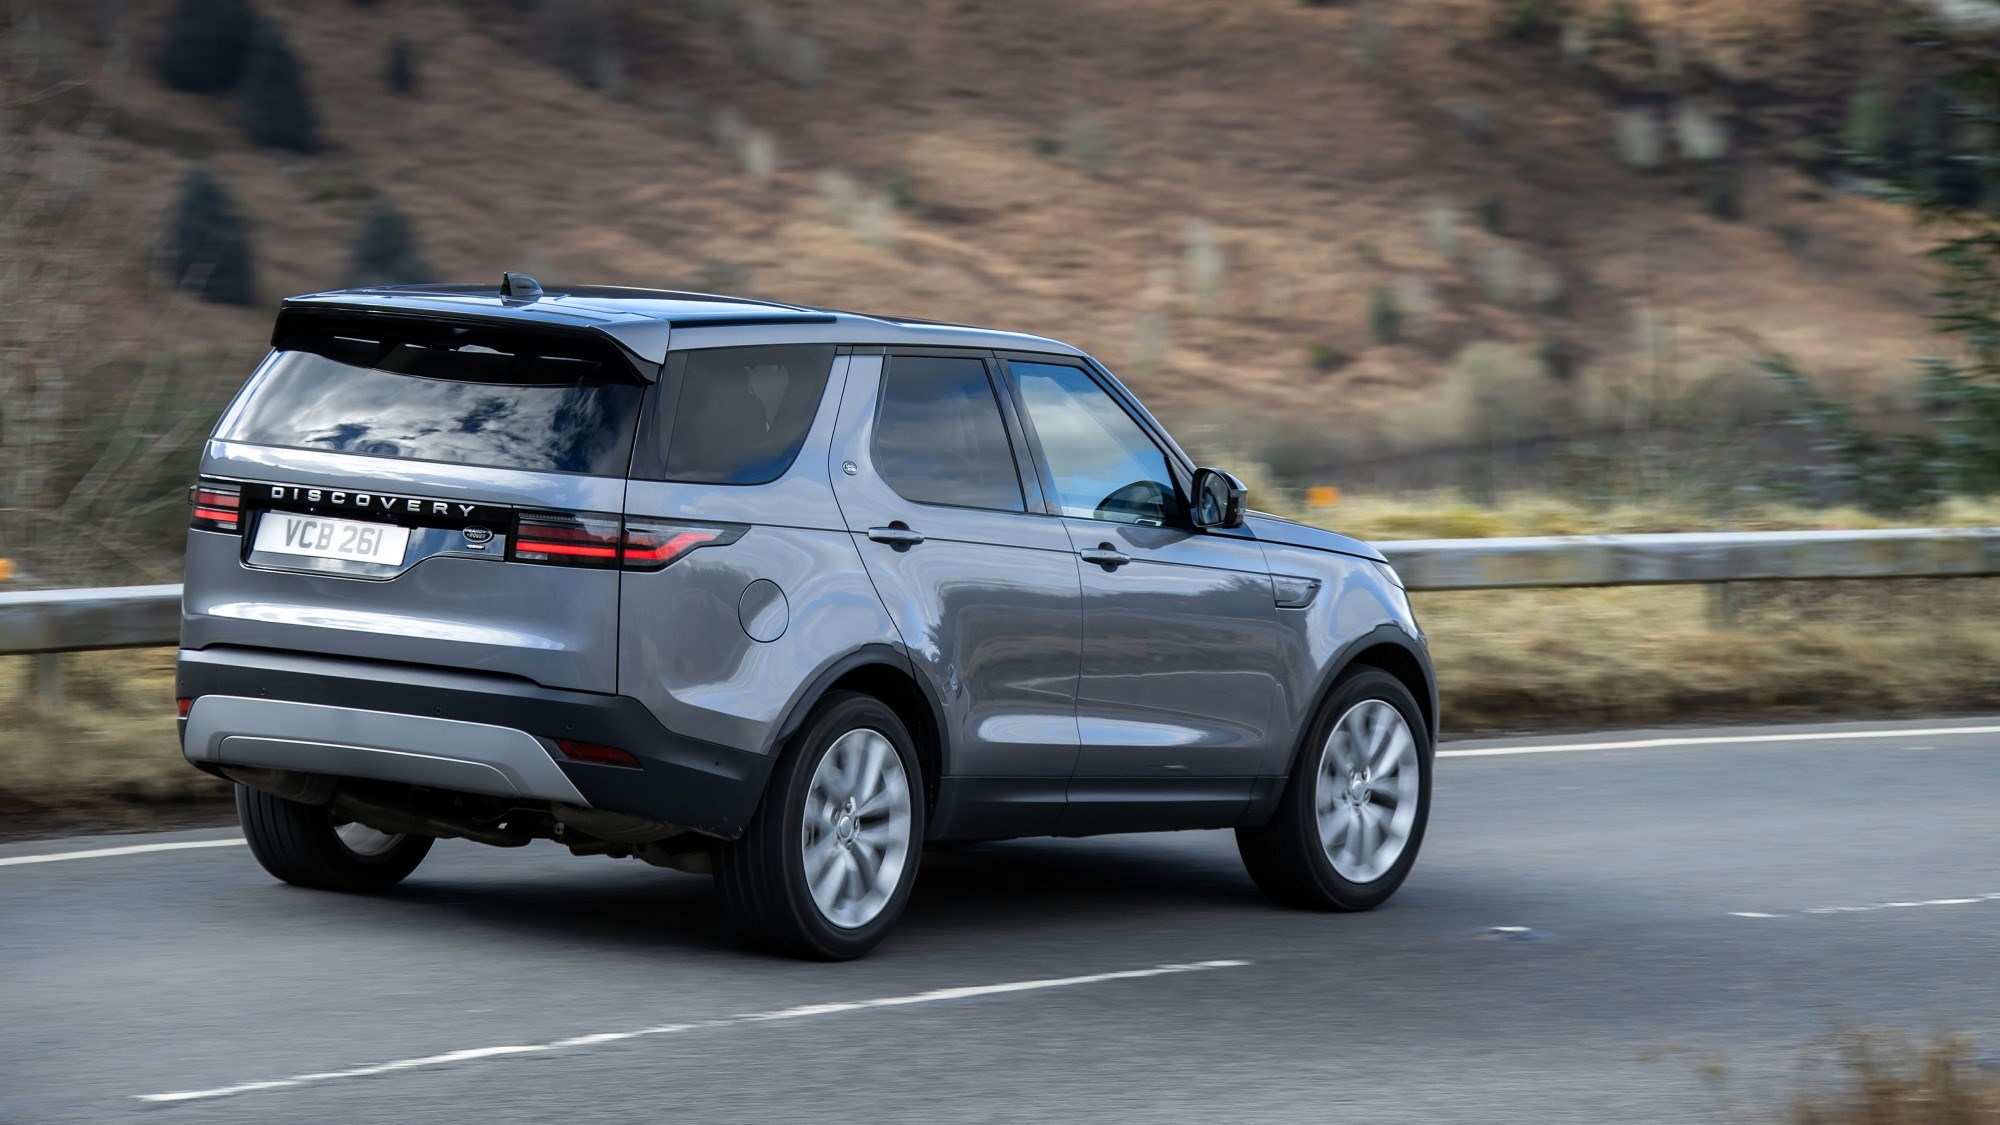 2021 Land Rover Discovery rear three quarter